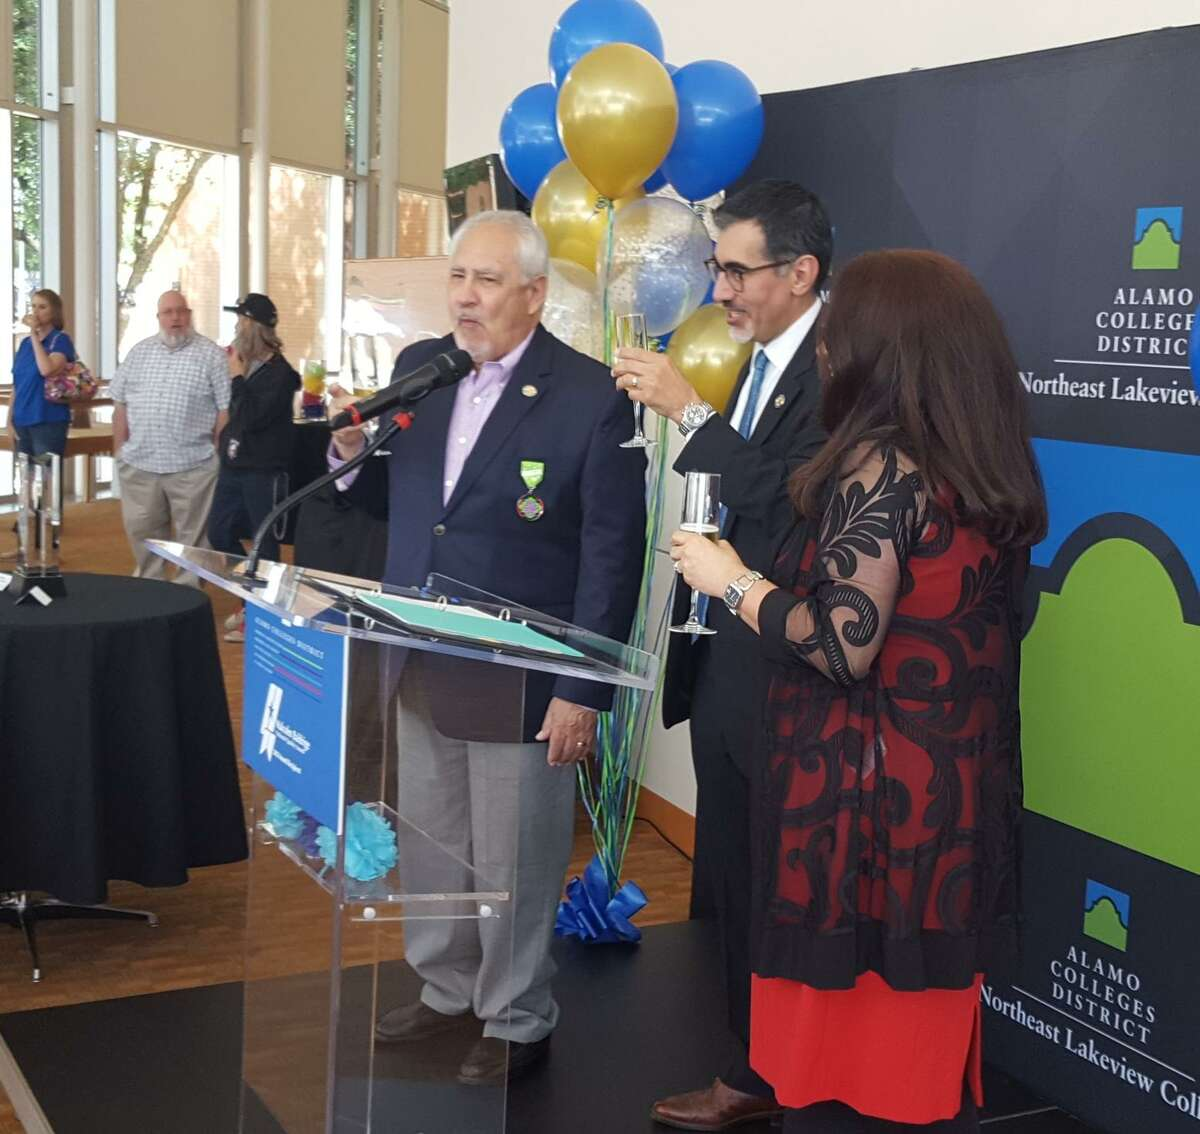 Mike Flores, Alamo Colleges District chancellor (center) raises his glass in a toast during an April 18 event at Northeast Lakeview College, celebrating the district's receipt of the Malcolm Baldrige National Quality Award. With Flores are ACD District Trustee Joe Jesse Sanchez, left, and Northeast Lakeview College President Veronica Garcia.